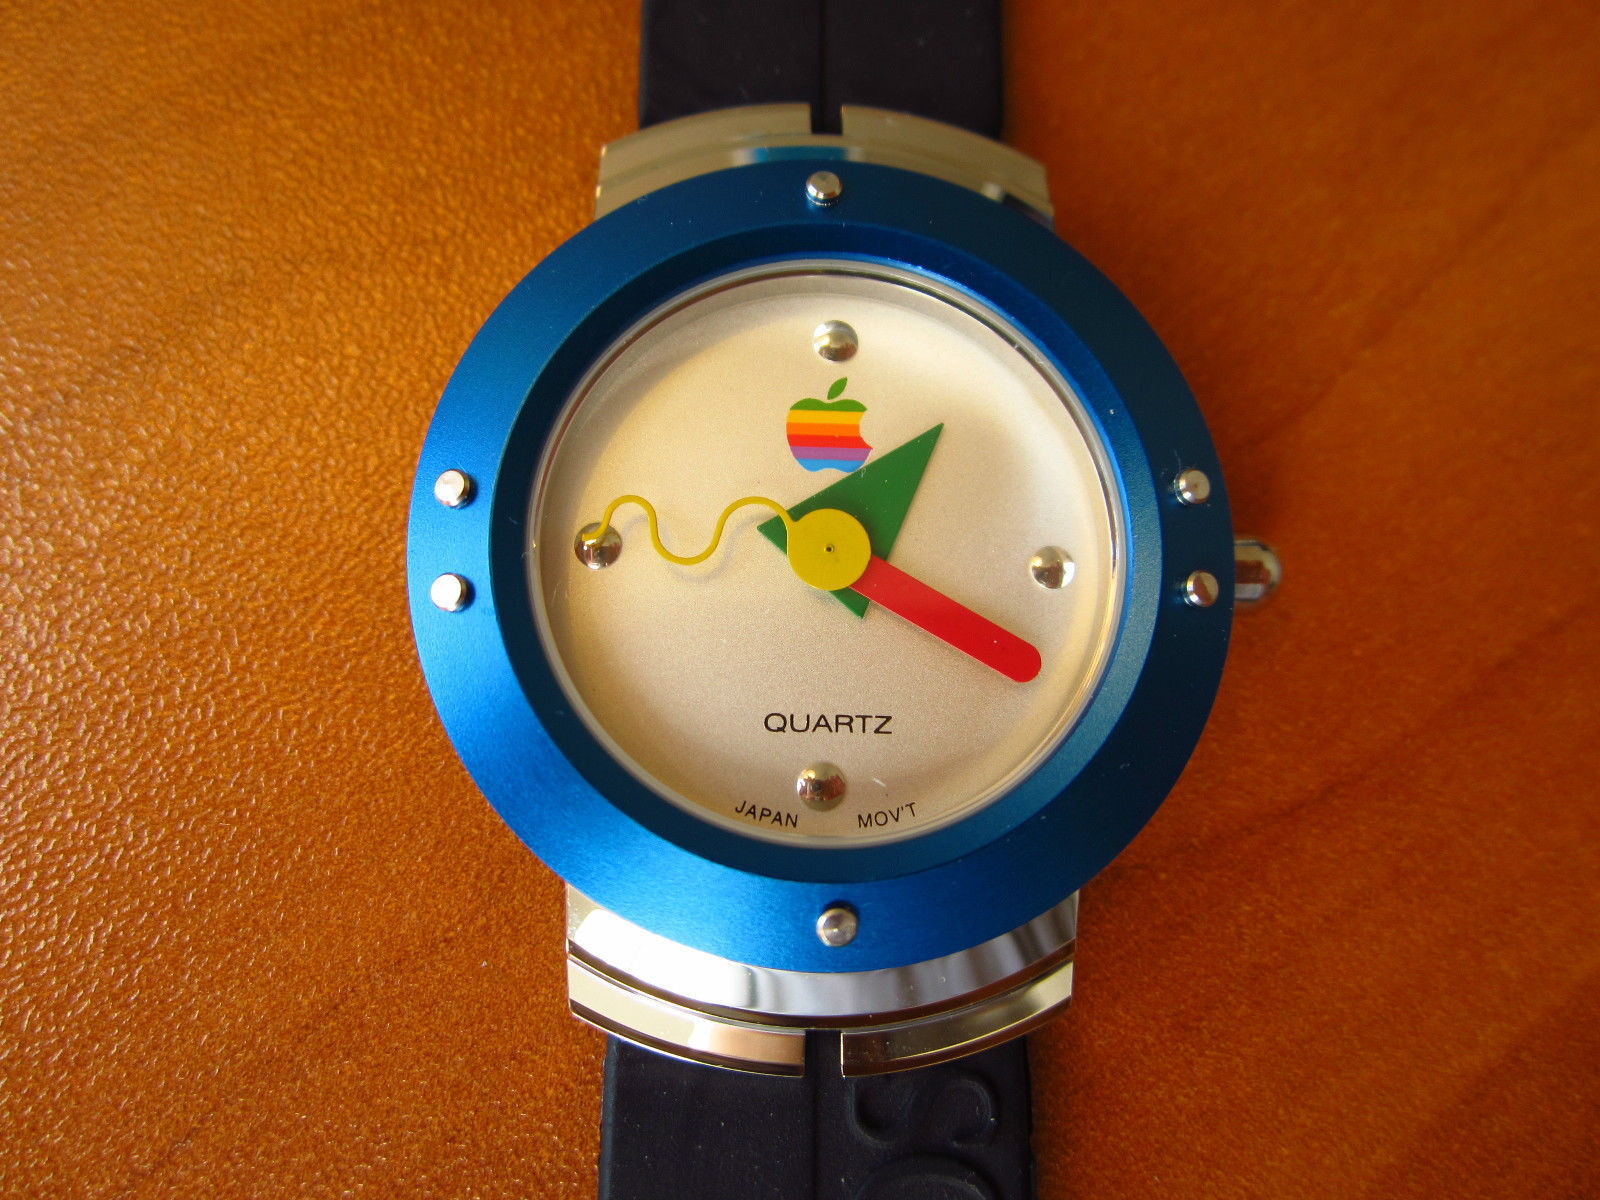 Apple watch from the '90s